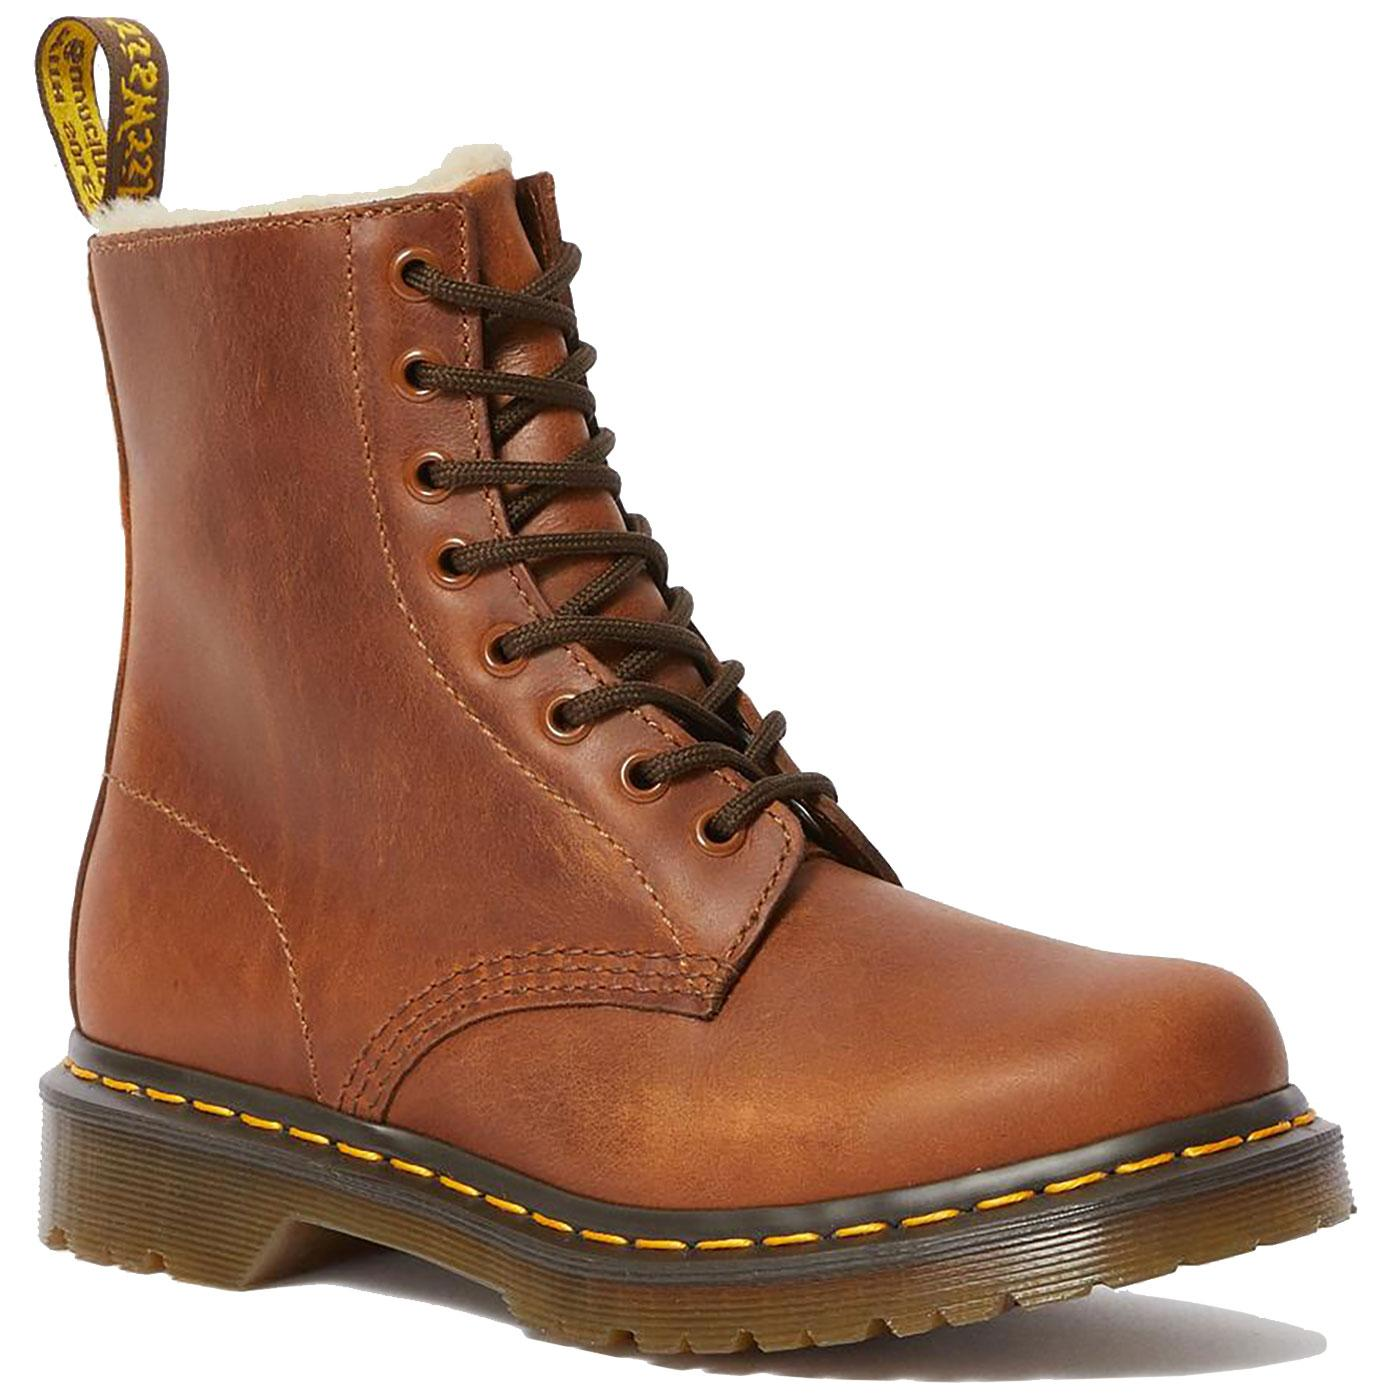 1460 Serena DR MARTENS Womens Faux Fur Lined Boots